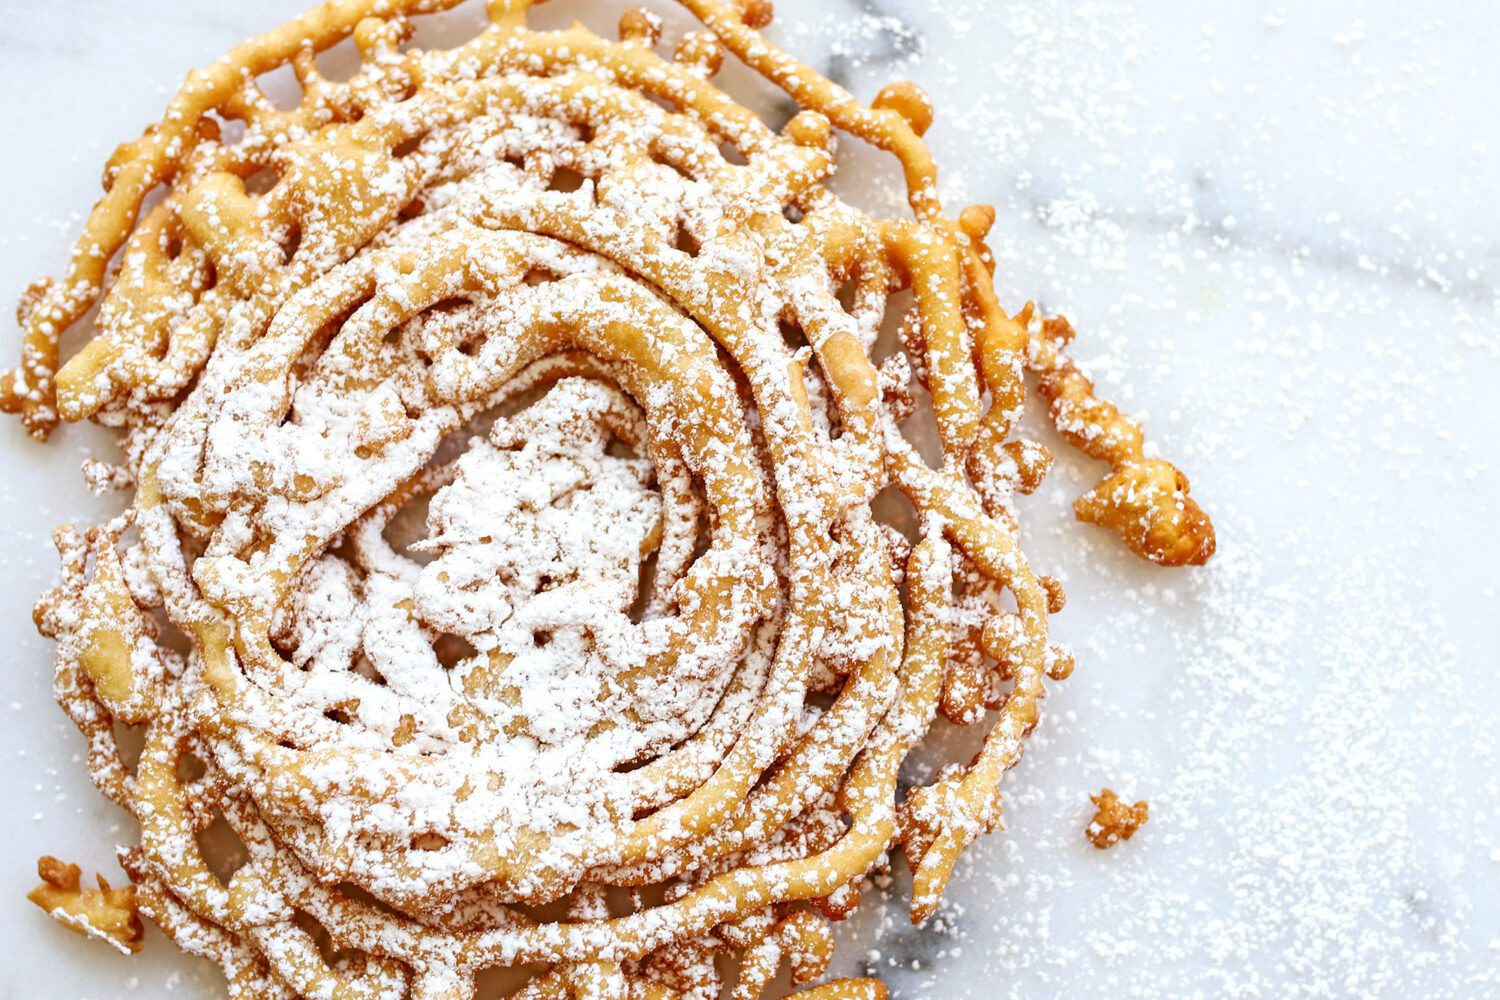 close up of a homemade funnel cake with powdered sugar